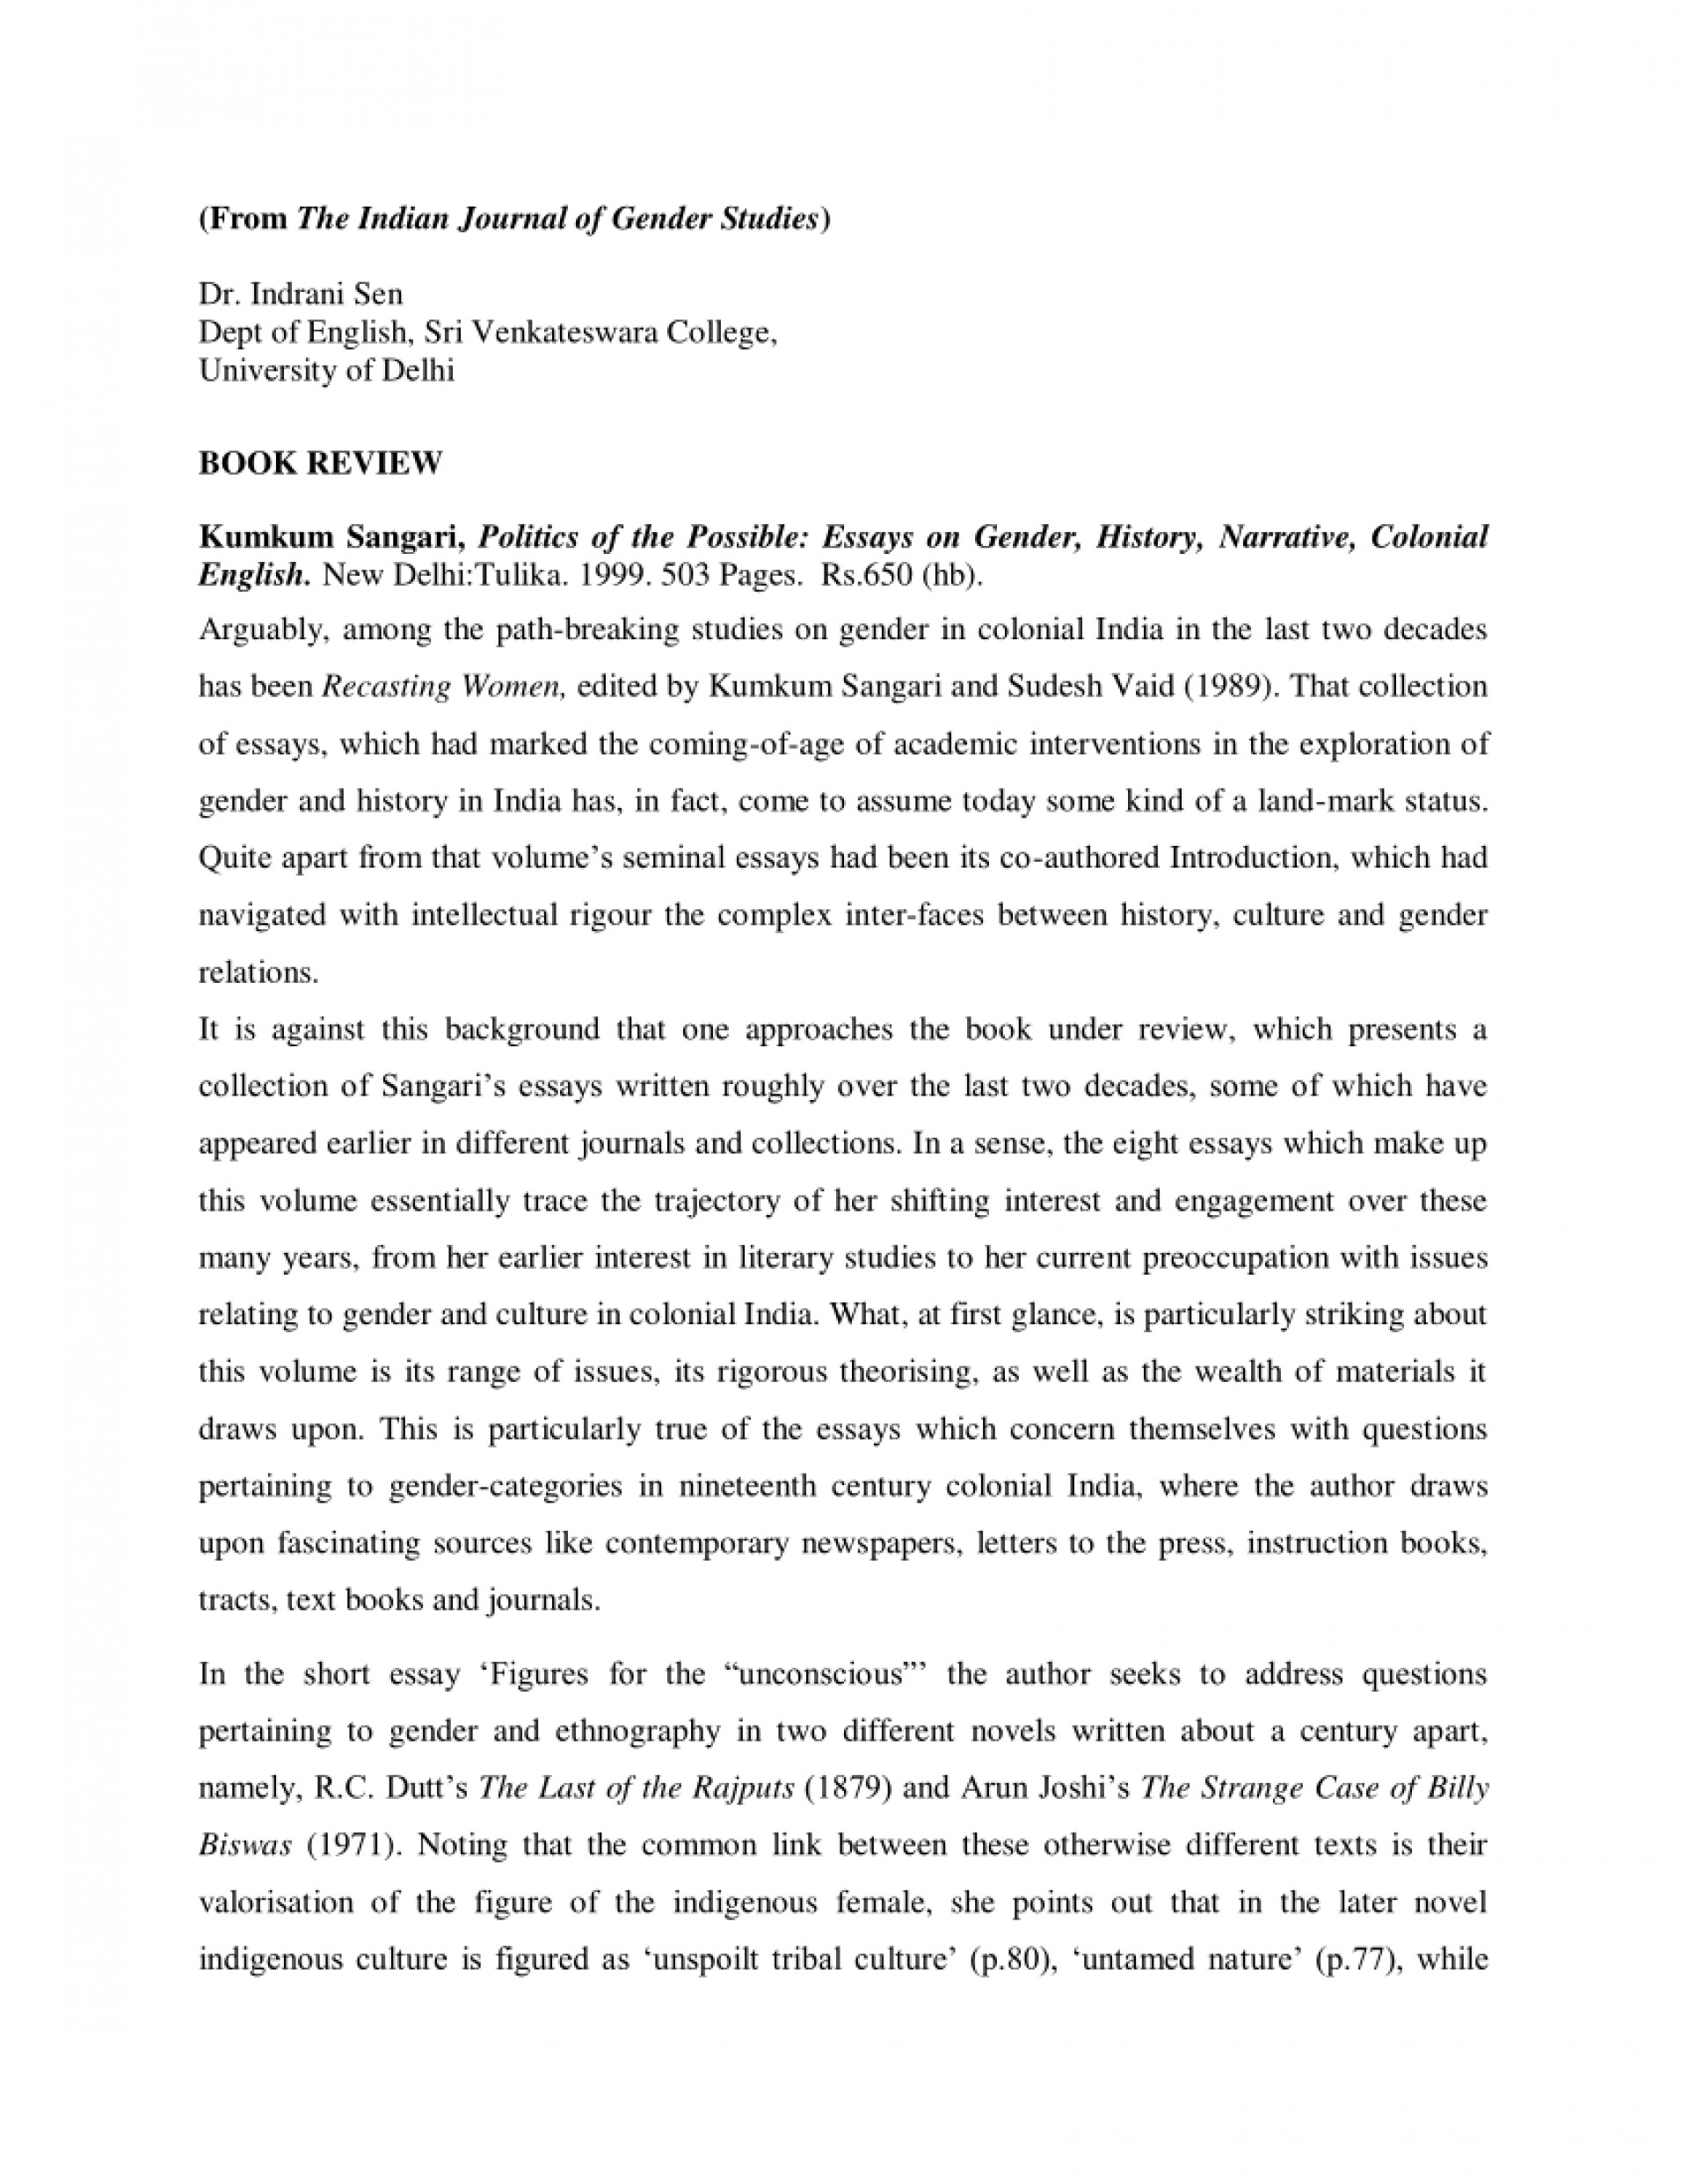 019 Essay On Women Example Incredible Women's Rights In India Short Empowerment 1920